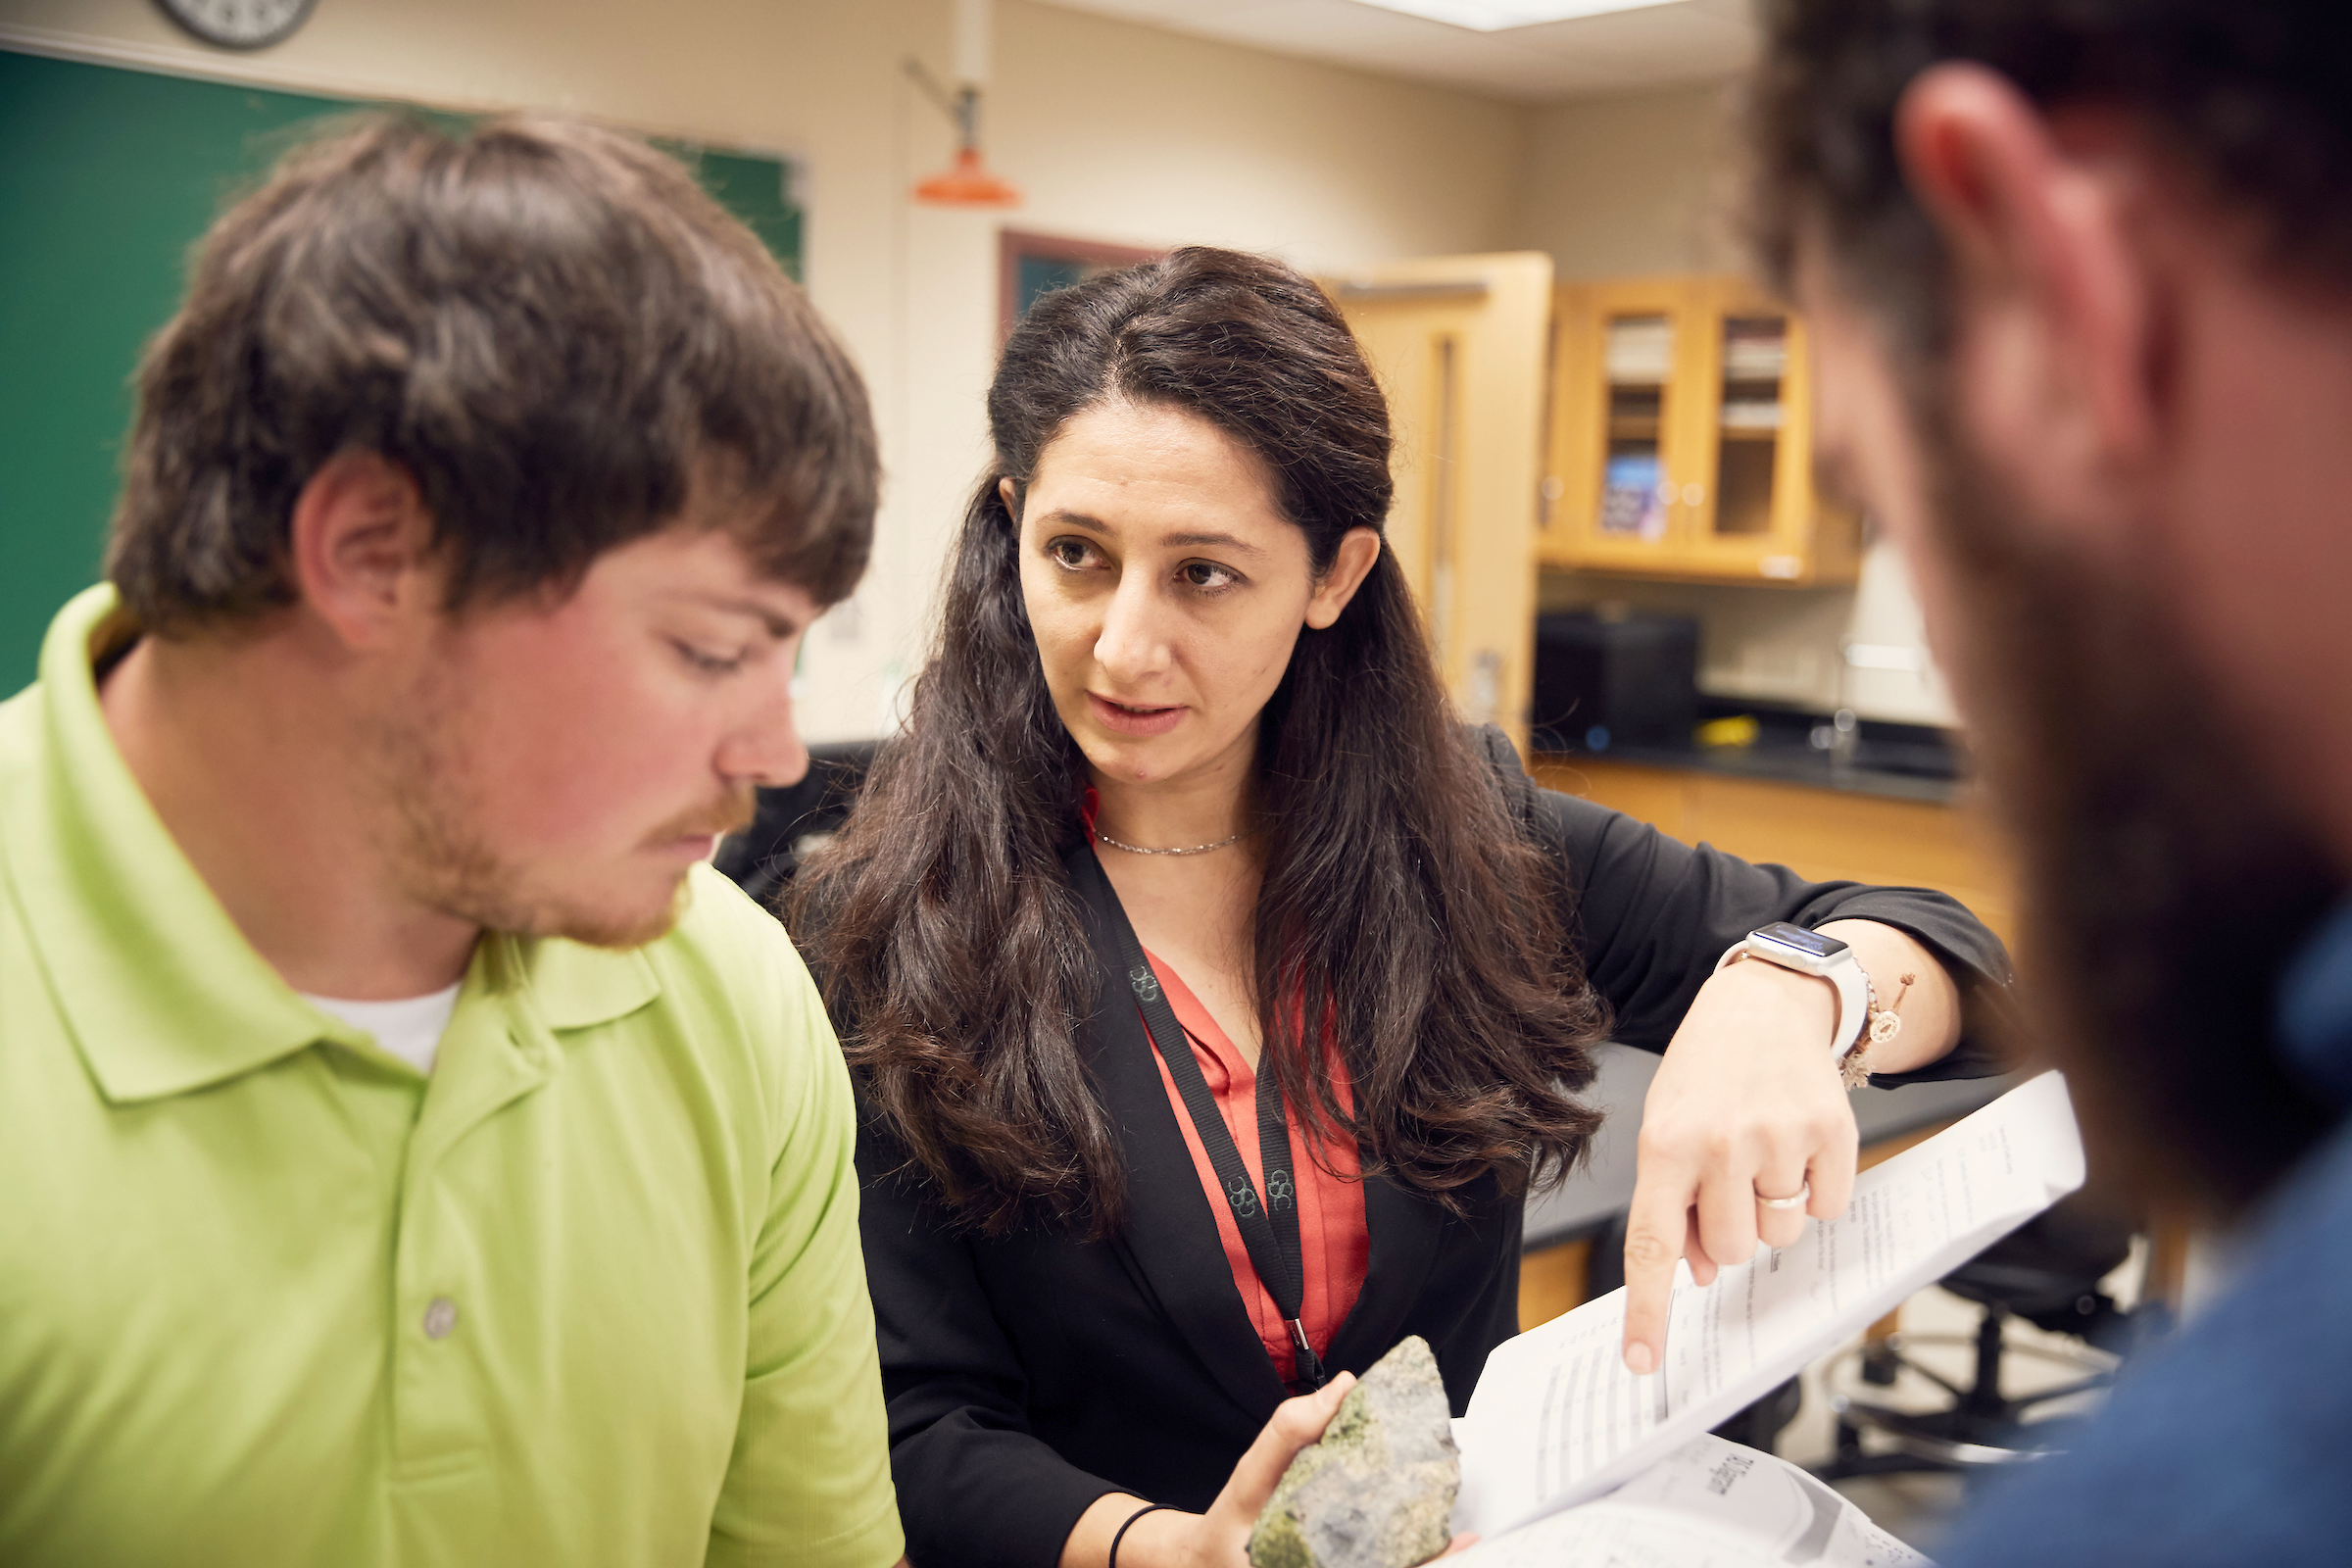 Academic Innovation & Excellence - The UNG Fund offers the resources our faculty need to become the best in their field. The Fund supports research opportunities and travel for conferences, which in turn, attract a world-class faculty.